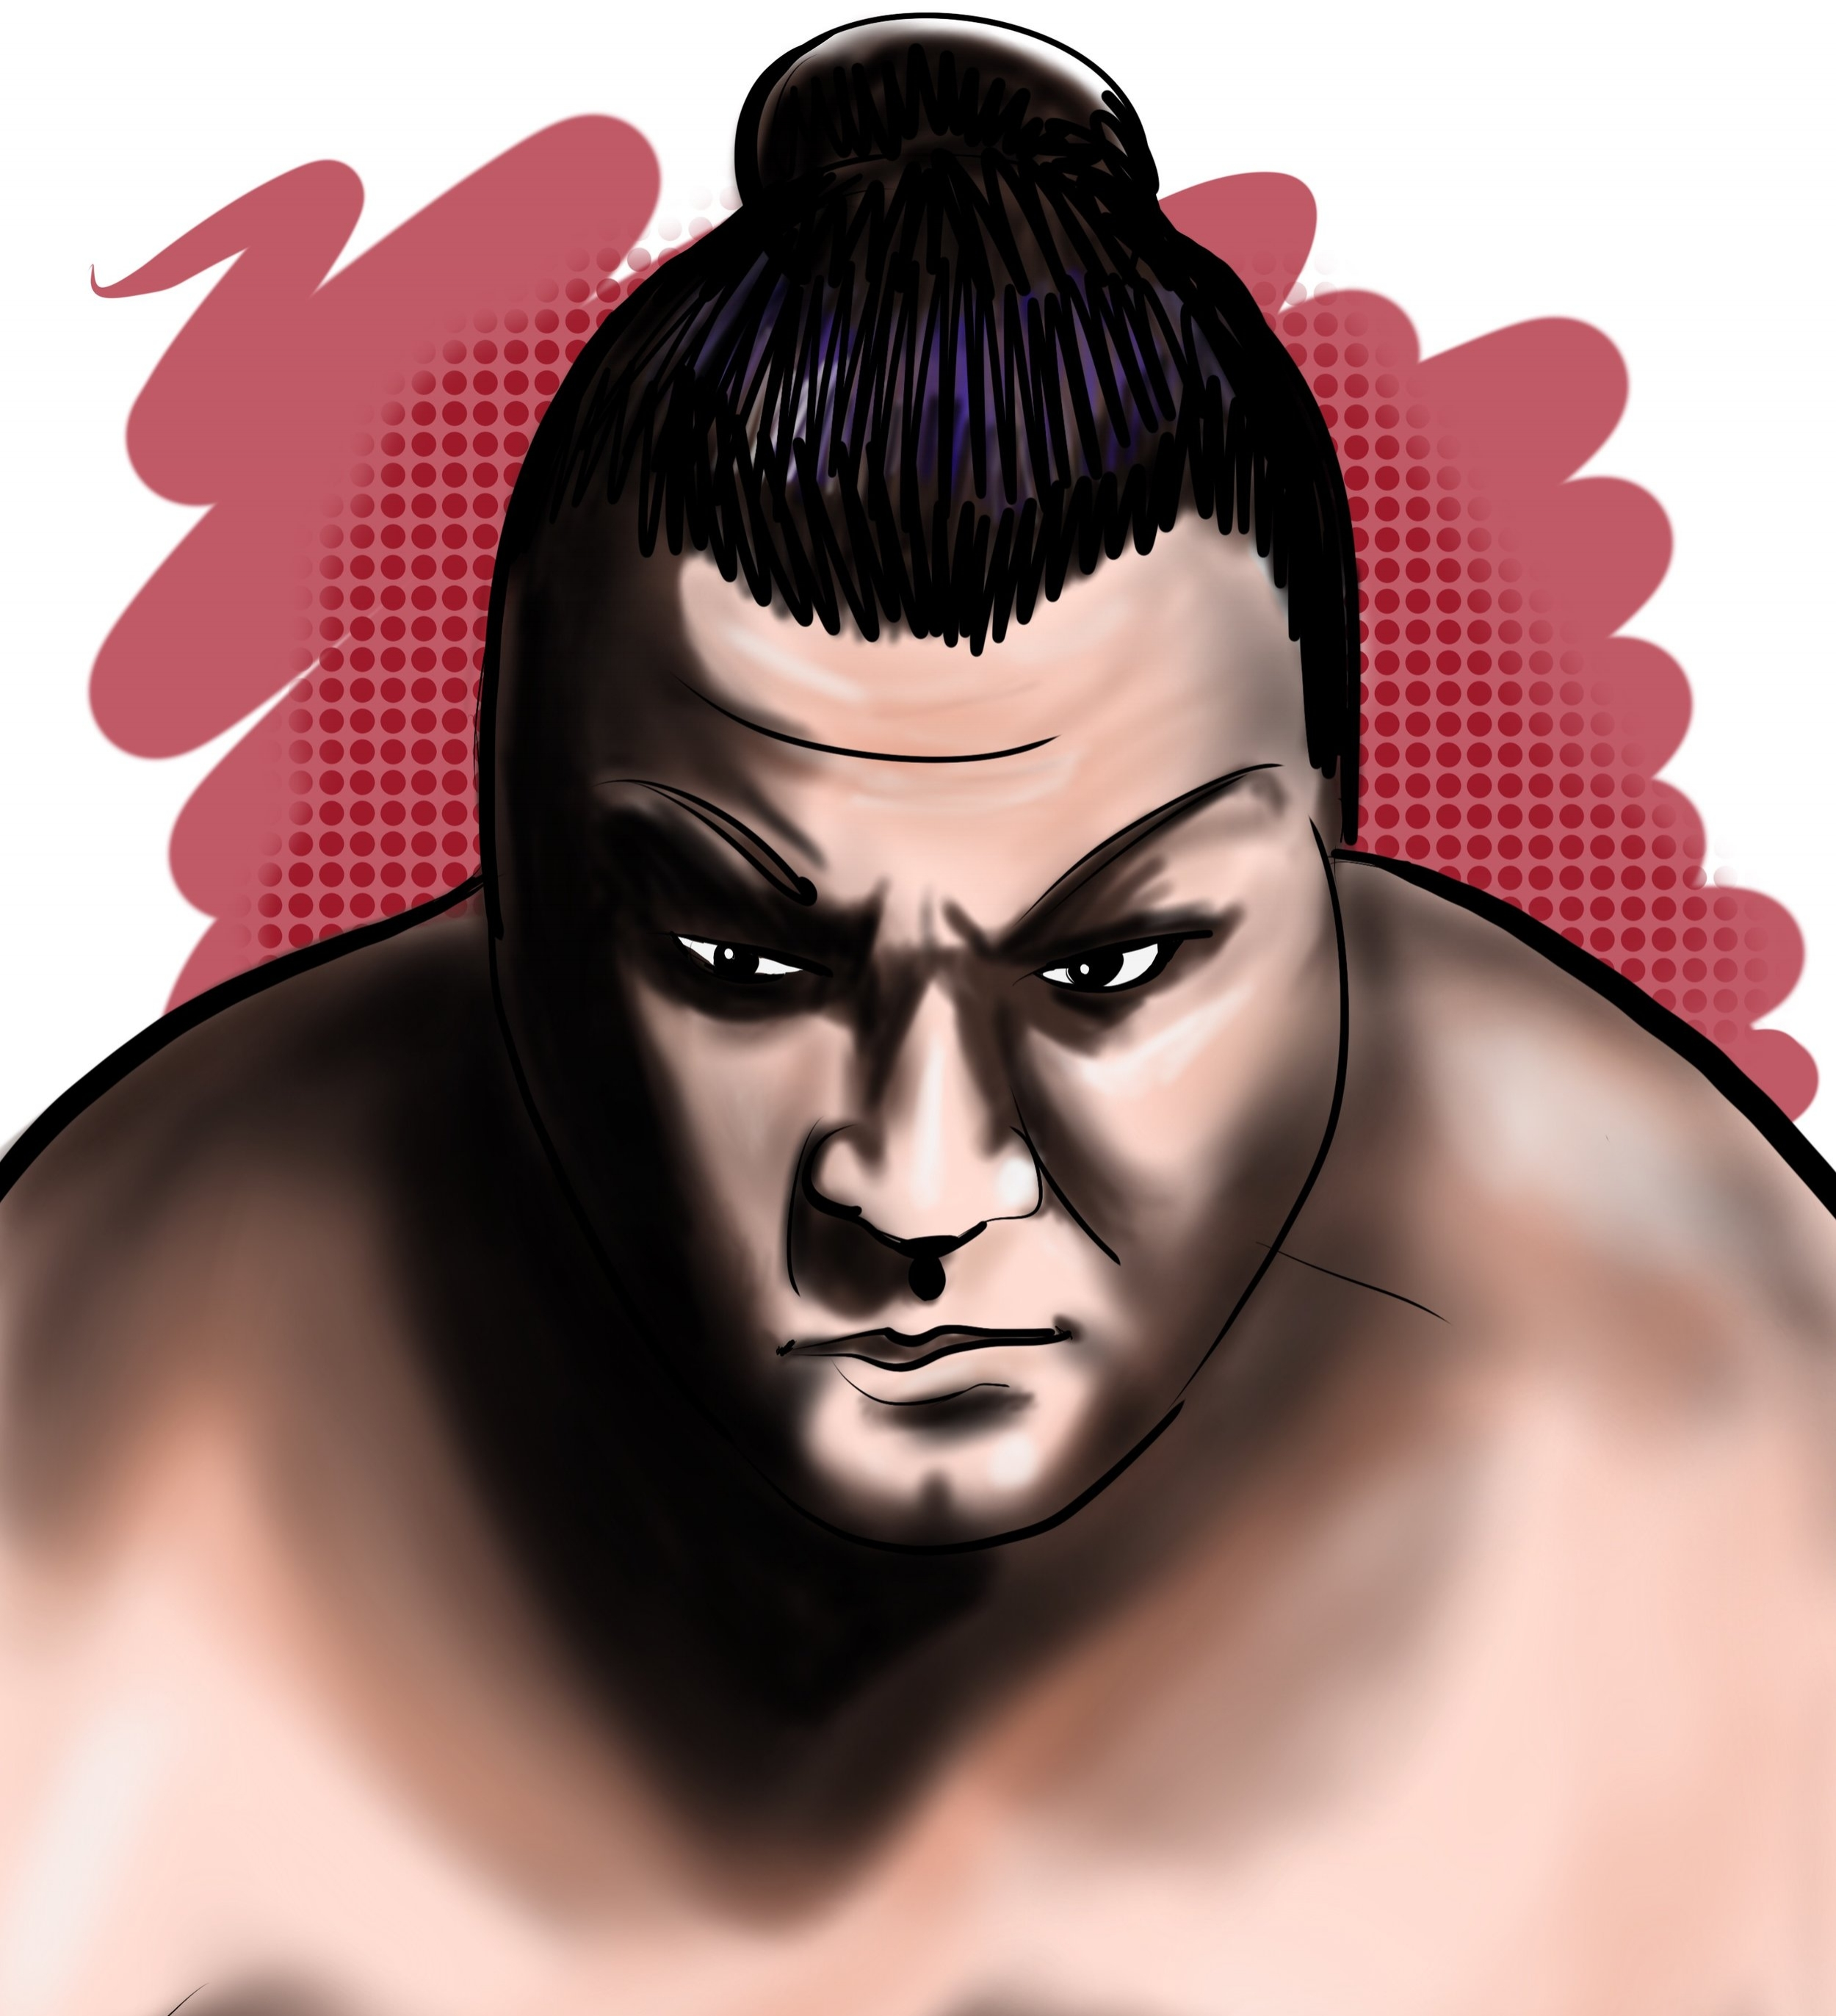 Mike WietechaCalifornia, United States - Serena is a fantastic artist. I gave her one of my sumo pictures and she made an awesome illustration. Her style is very unique and she chooses fun colors!Professional competitive sumo wrestler on a portrait of himself